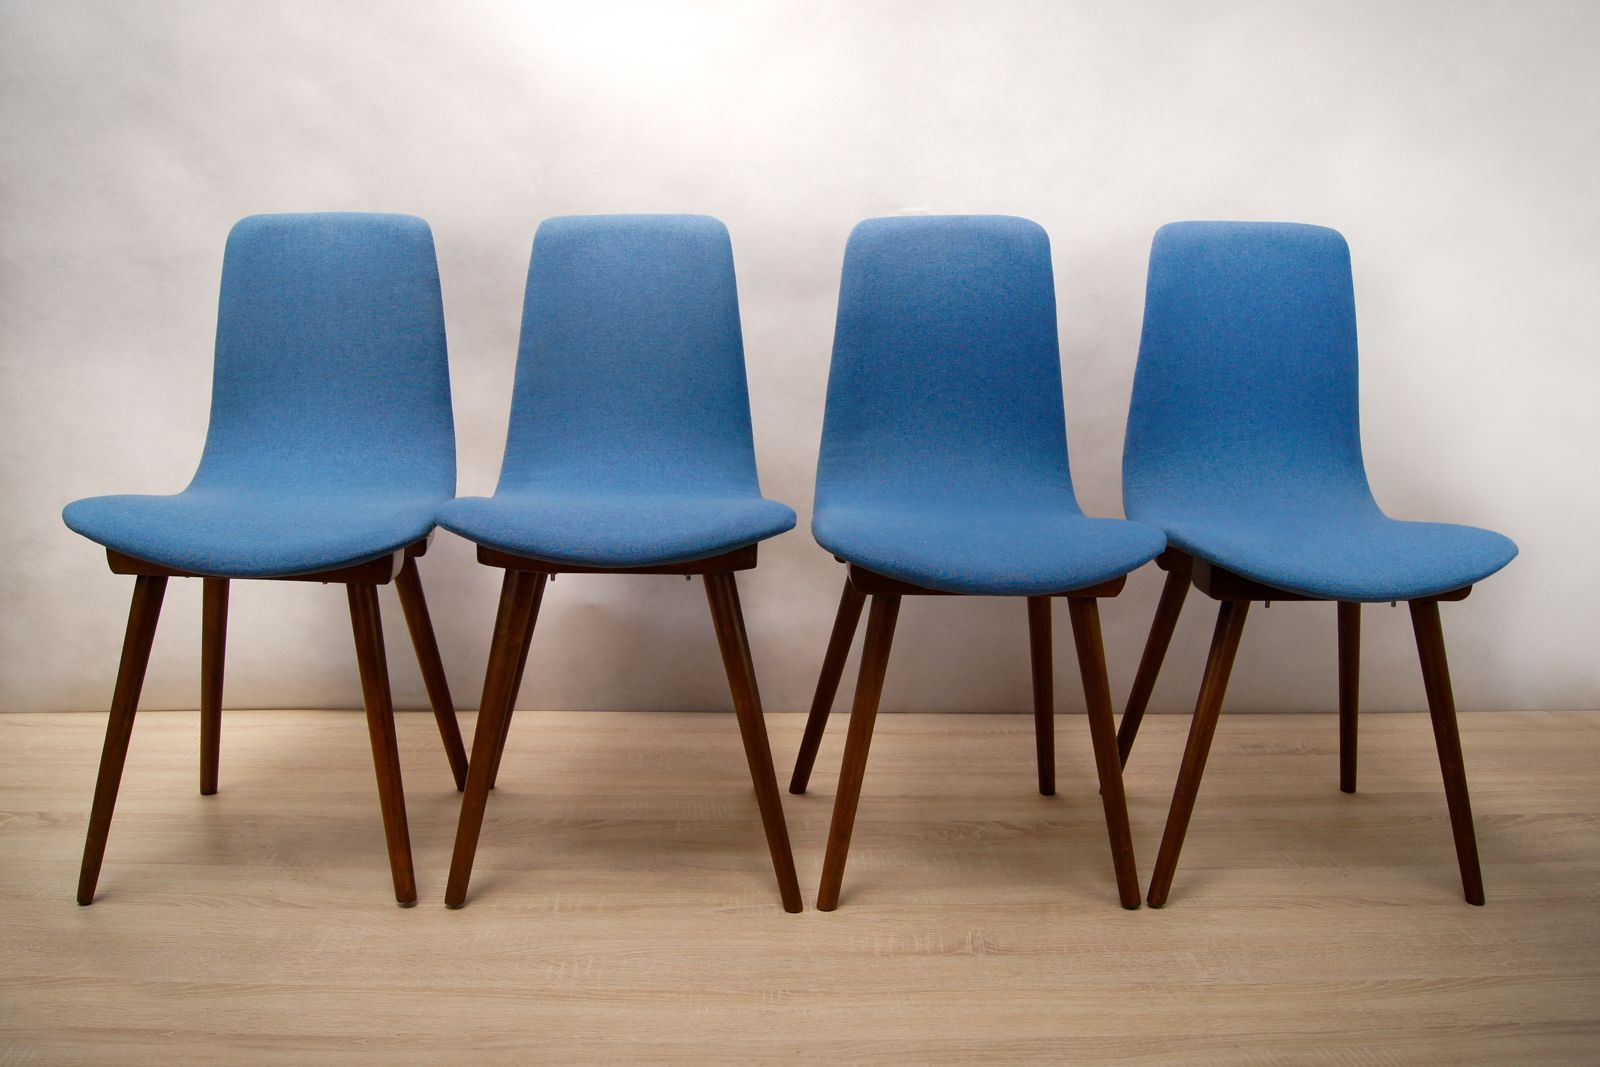 A 6150 Dining Chairs from Fameg 1960s Set of 4 for sale at Pamono